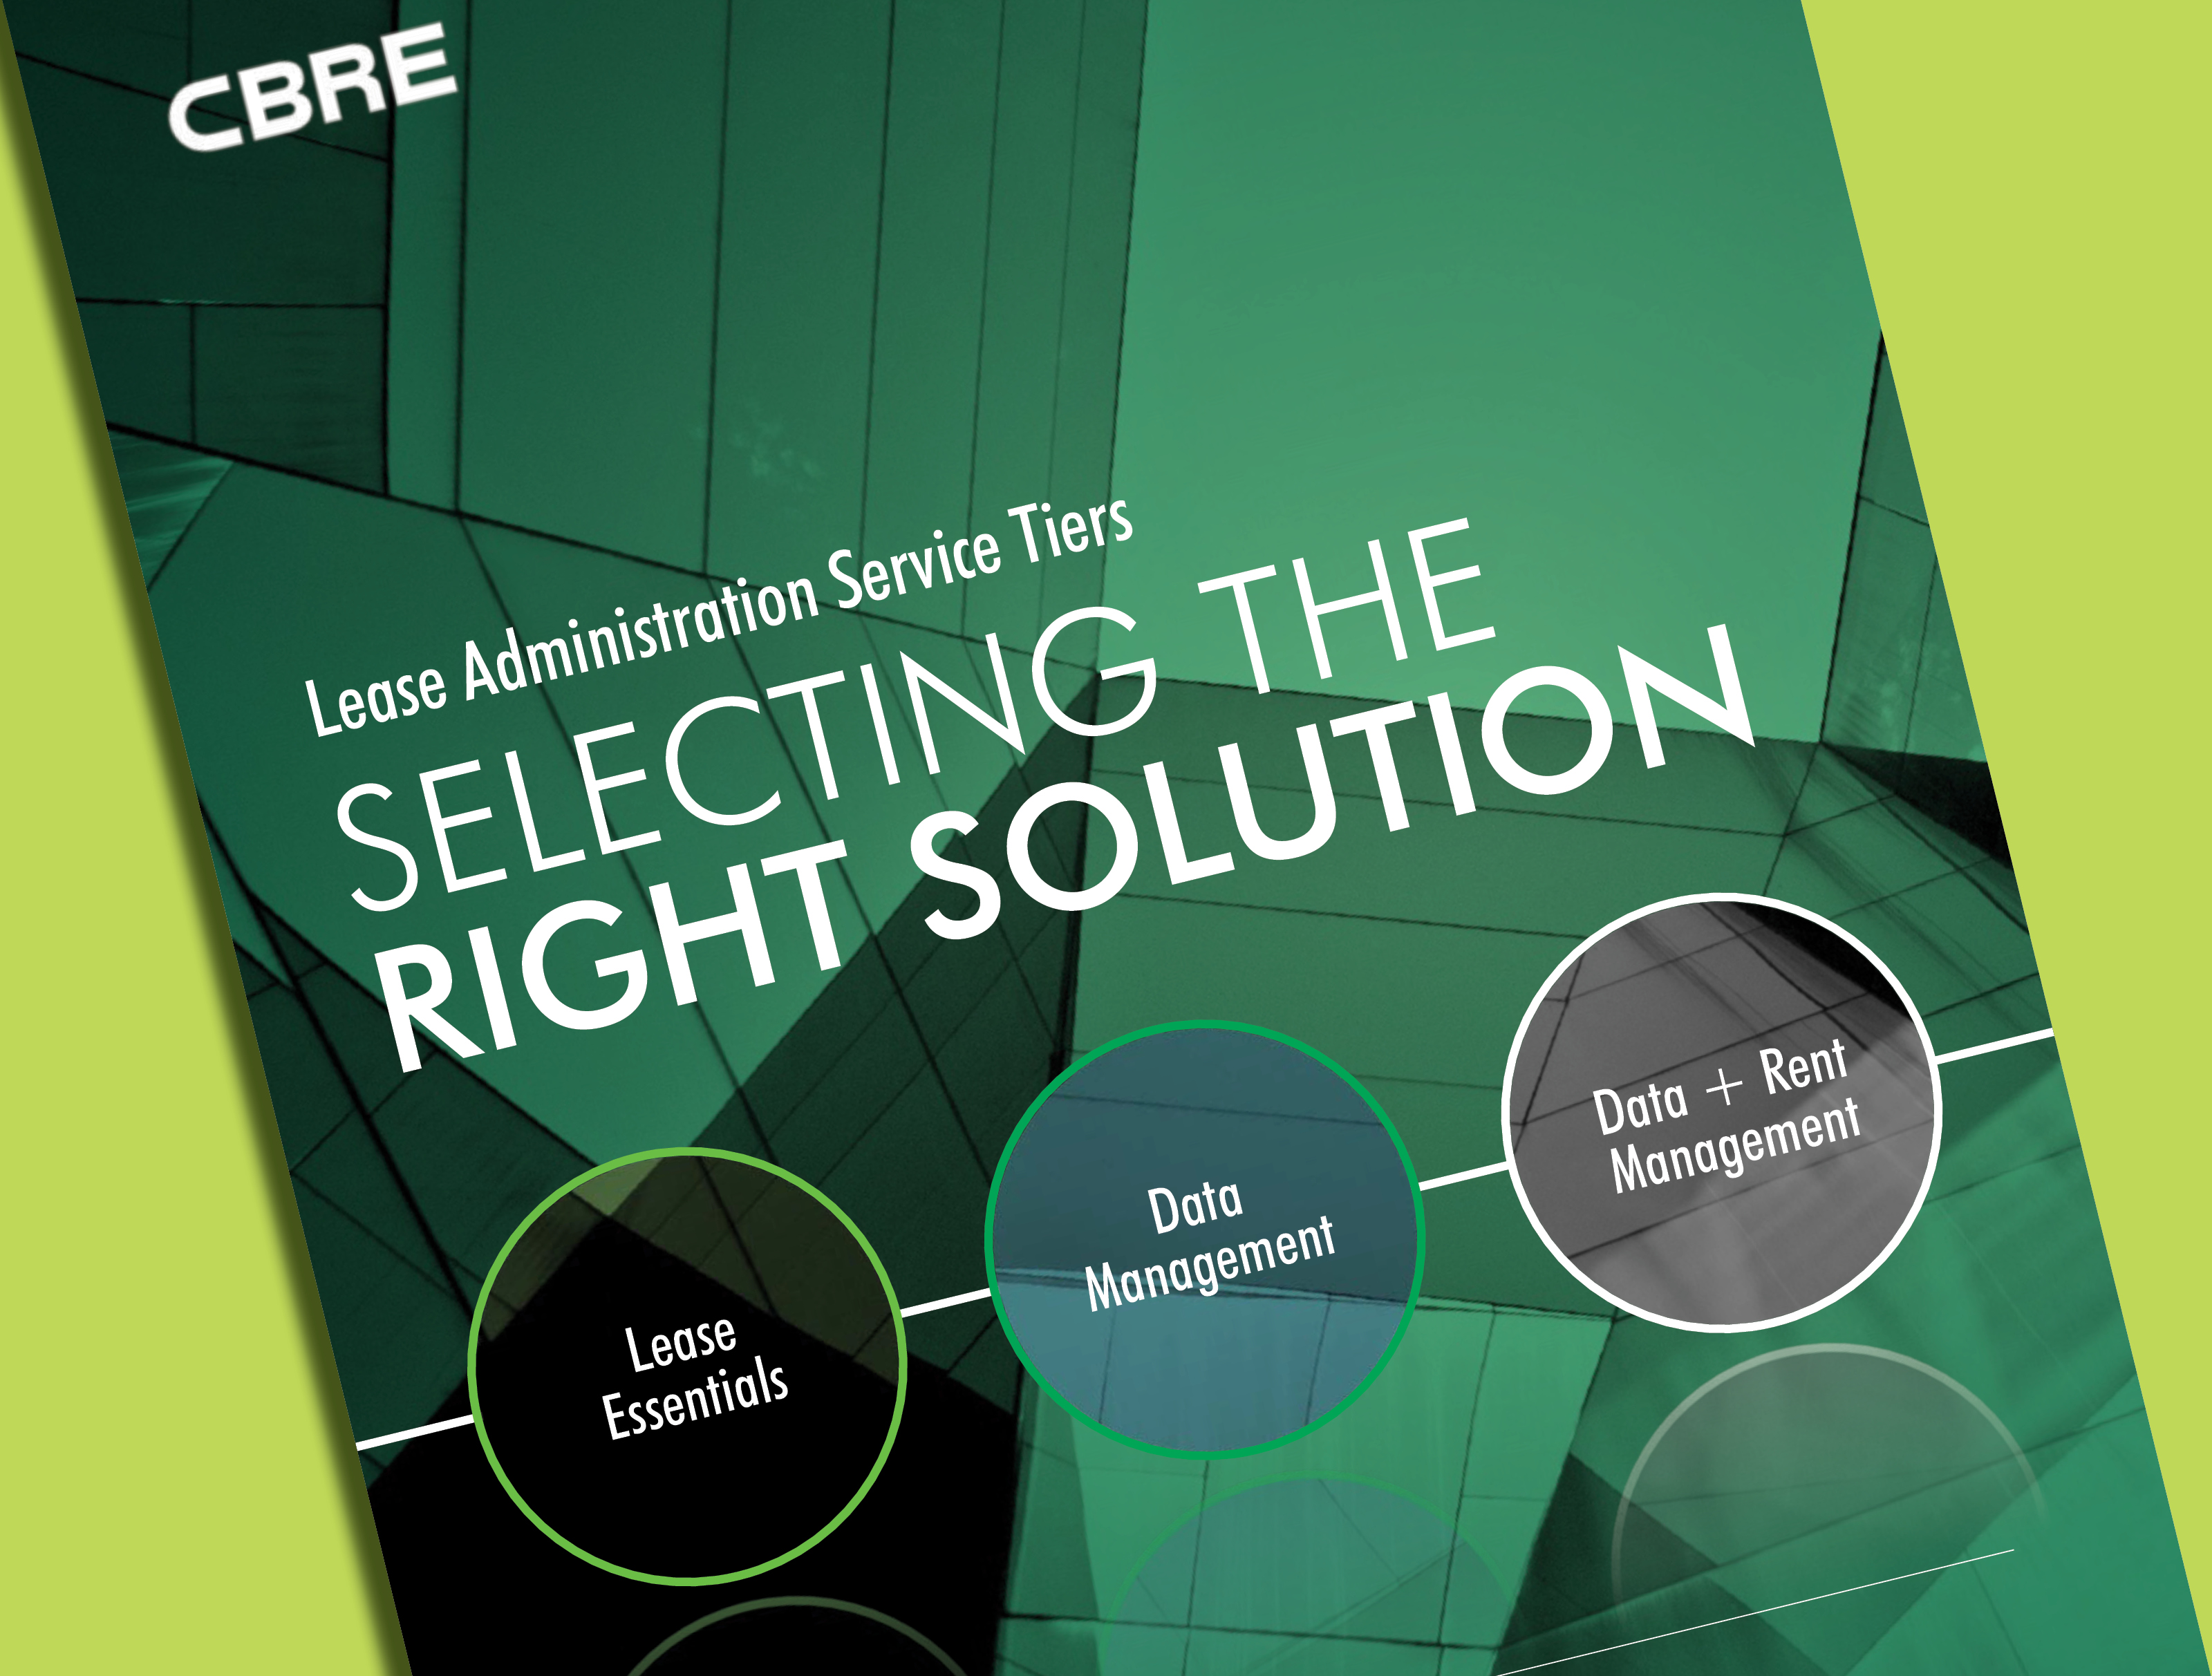 Selecting the right solution...